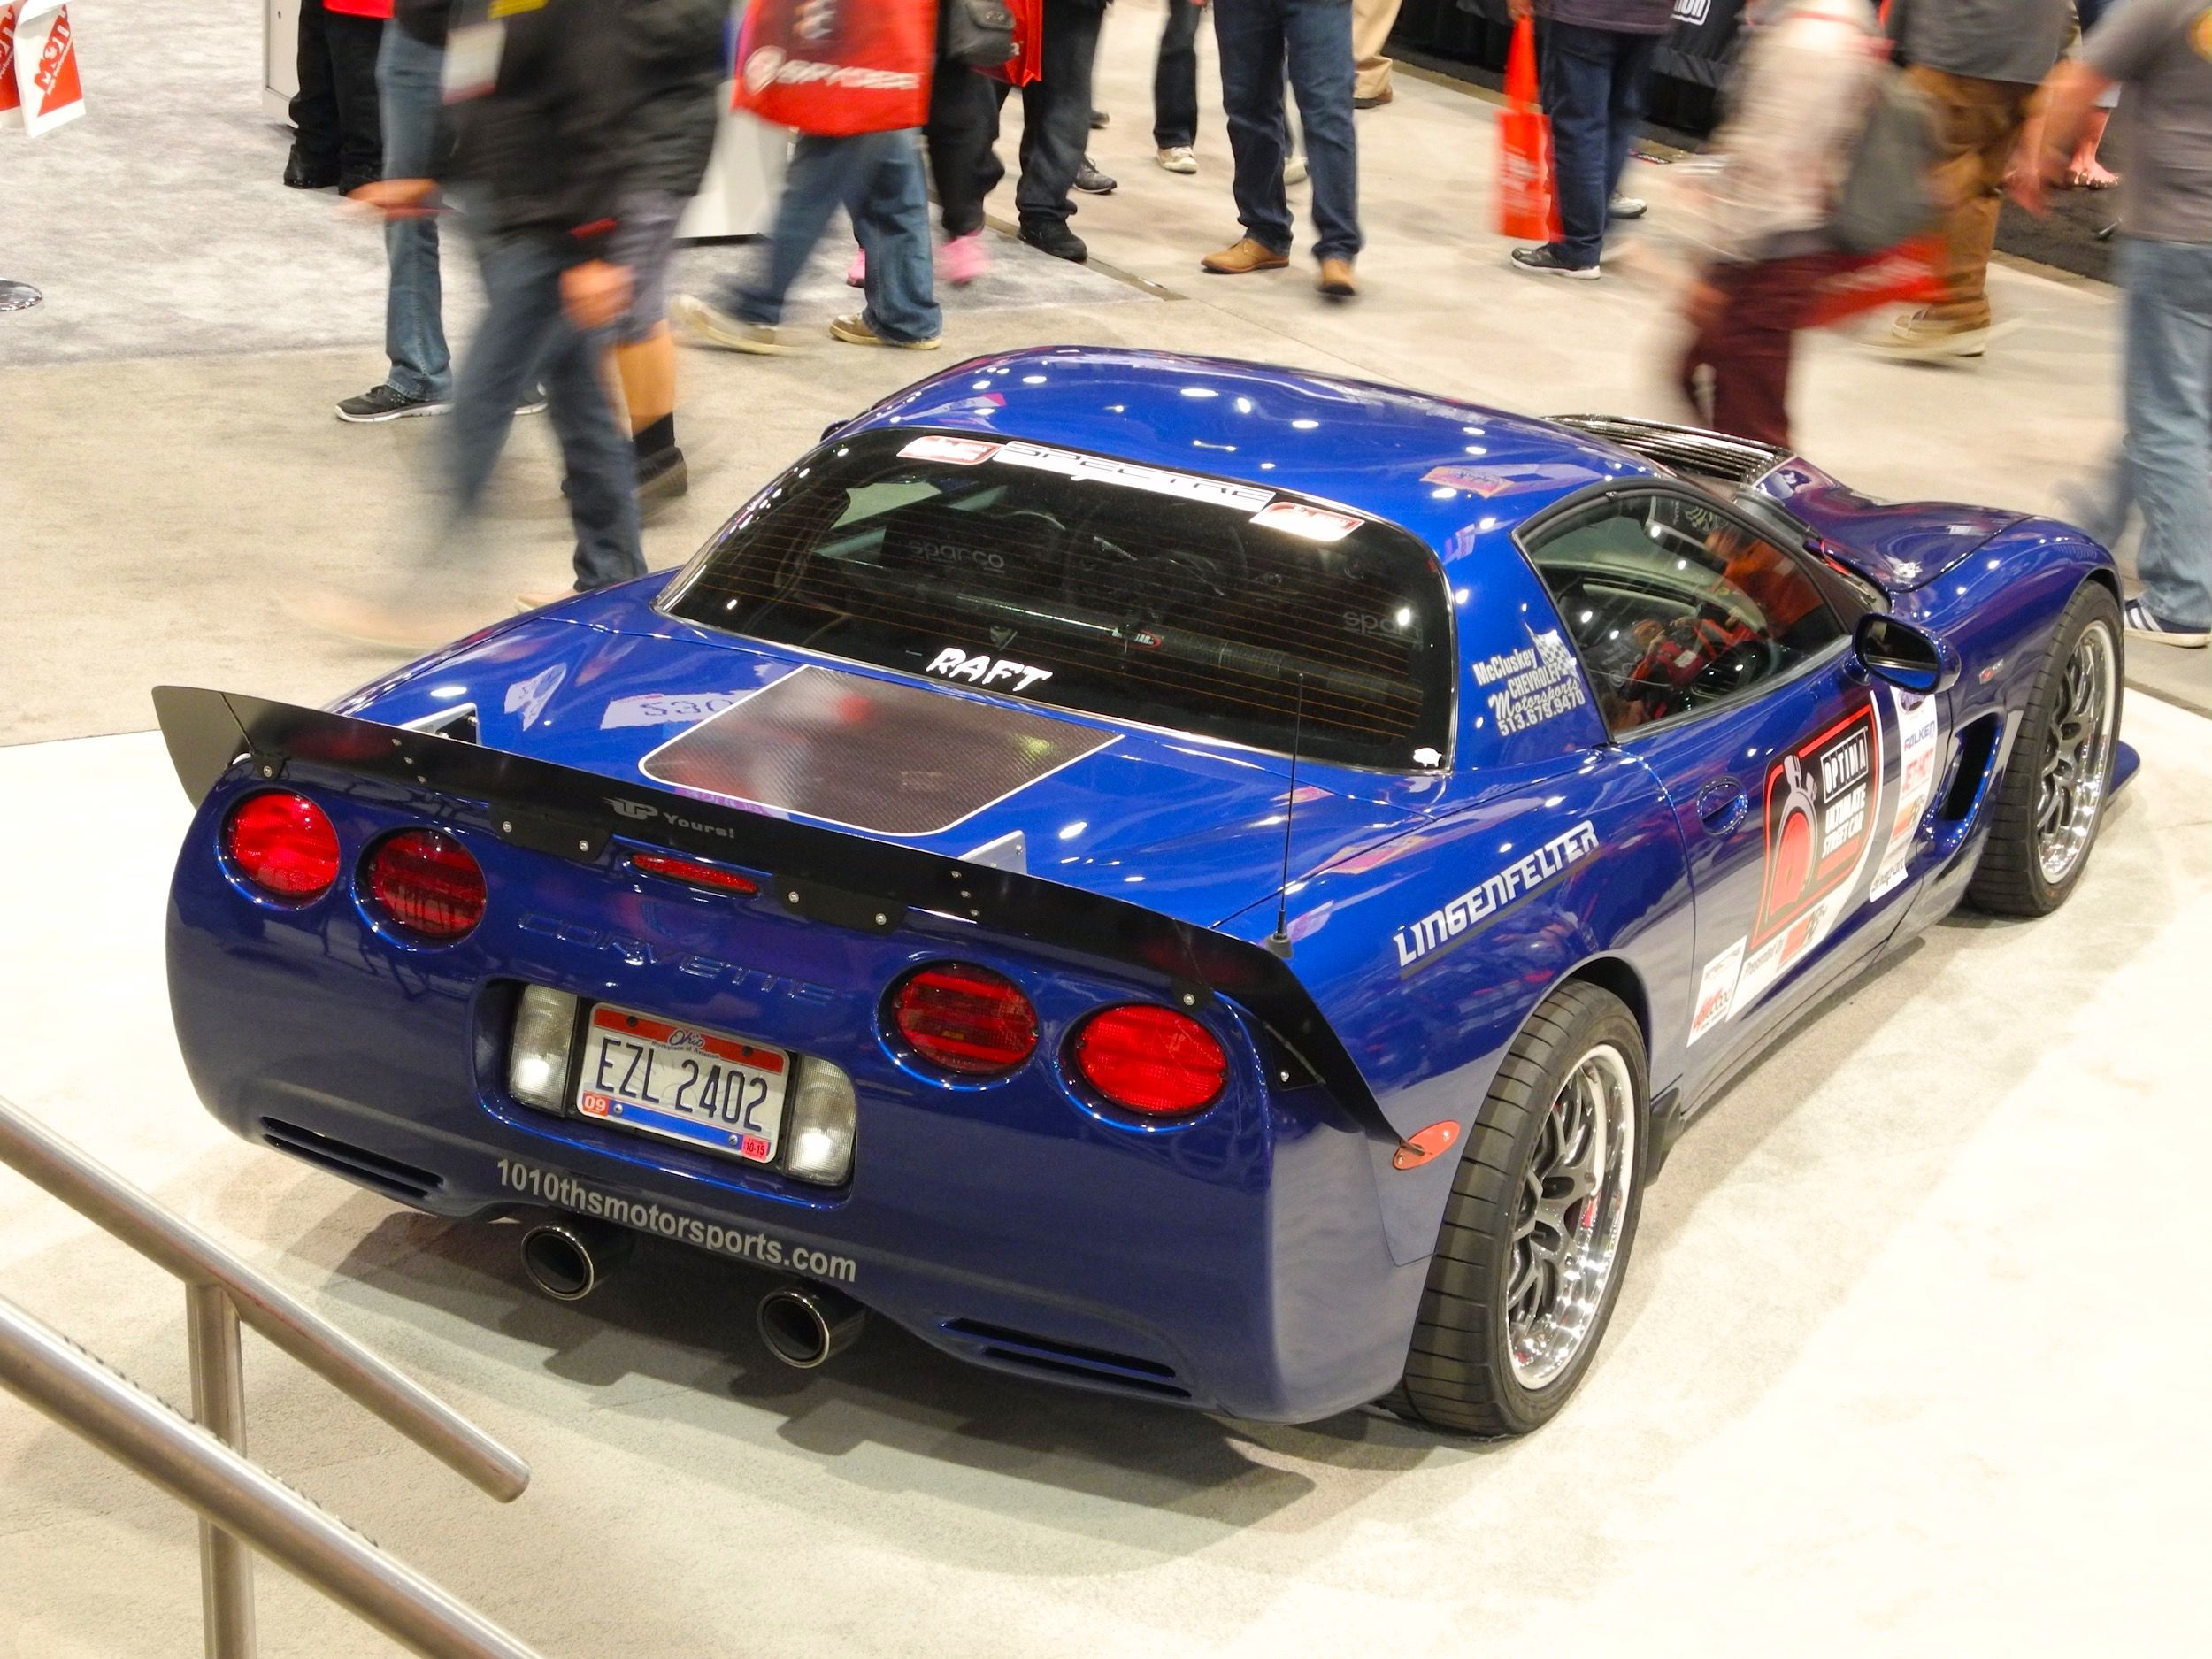 Danny Popp S Ousci Winning C5 Z06 At Champion S Corner In The Optima Batteries Booth At The 2015 Sema Show This Lingen Corvette Performance Racing Sema 2015